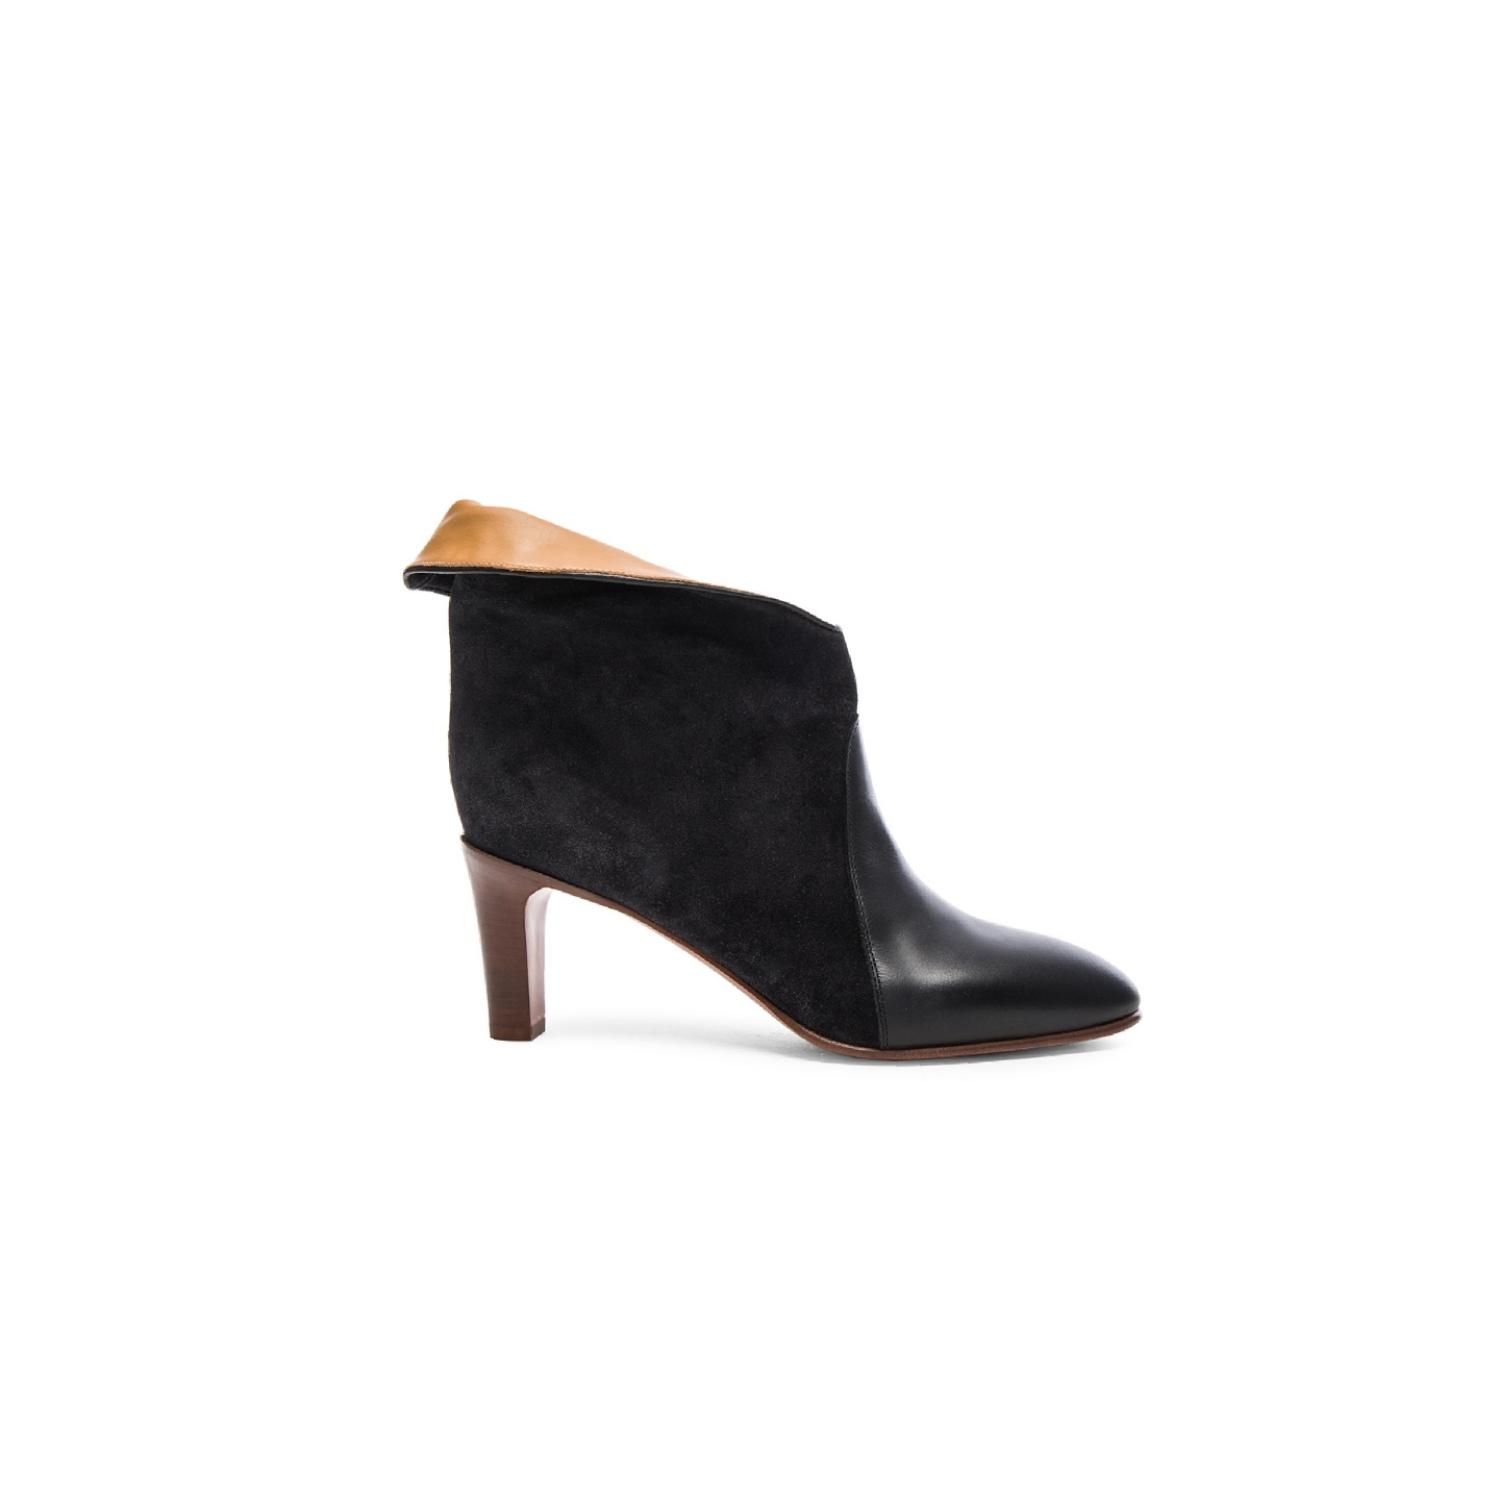 45283afd0f47a Chloé Black Fold-over Bicolor Ankle Boots/Booties Size EU 36 (Approx ...